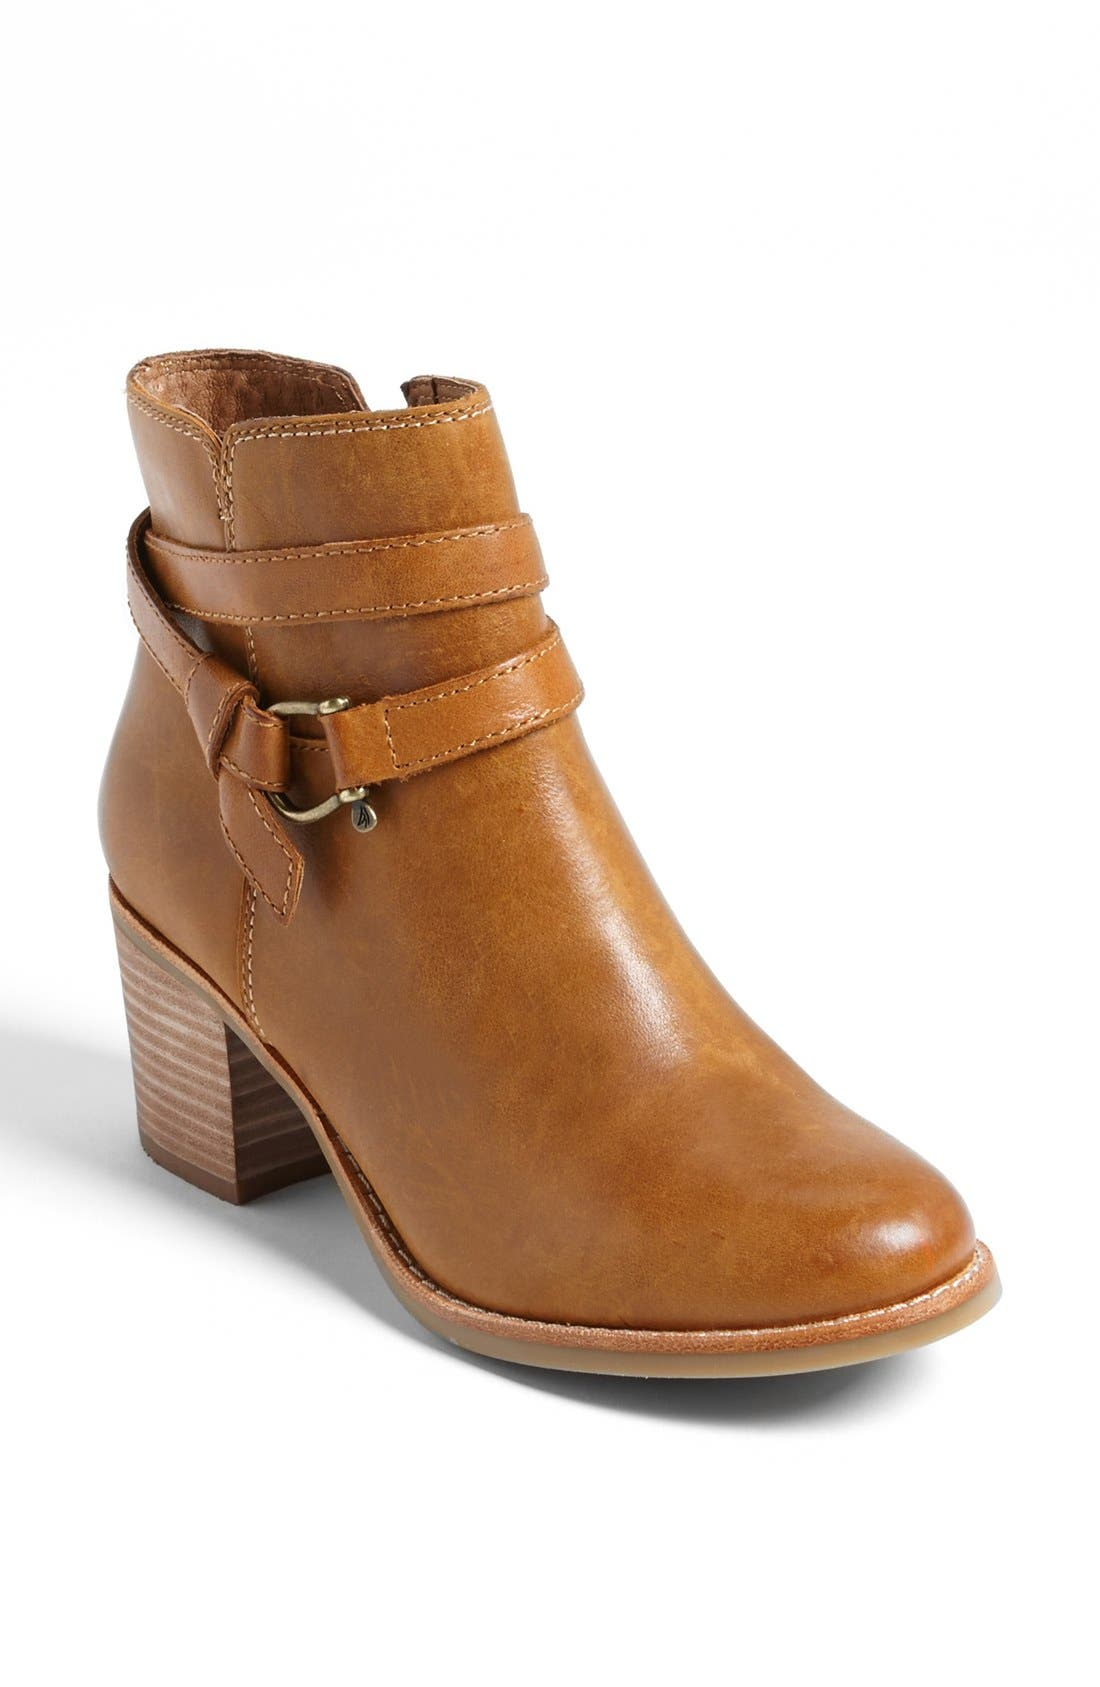 Top-Sider<sup>®</sup> 'Chelton' Bootie,                             Main thumbnail 1, color,                             Tan